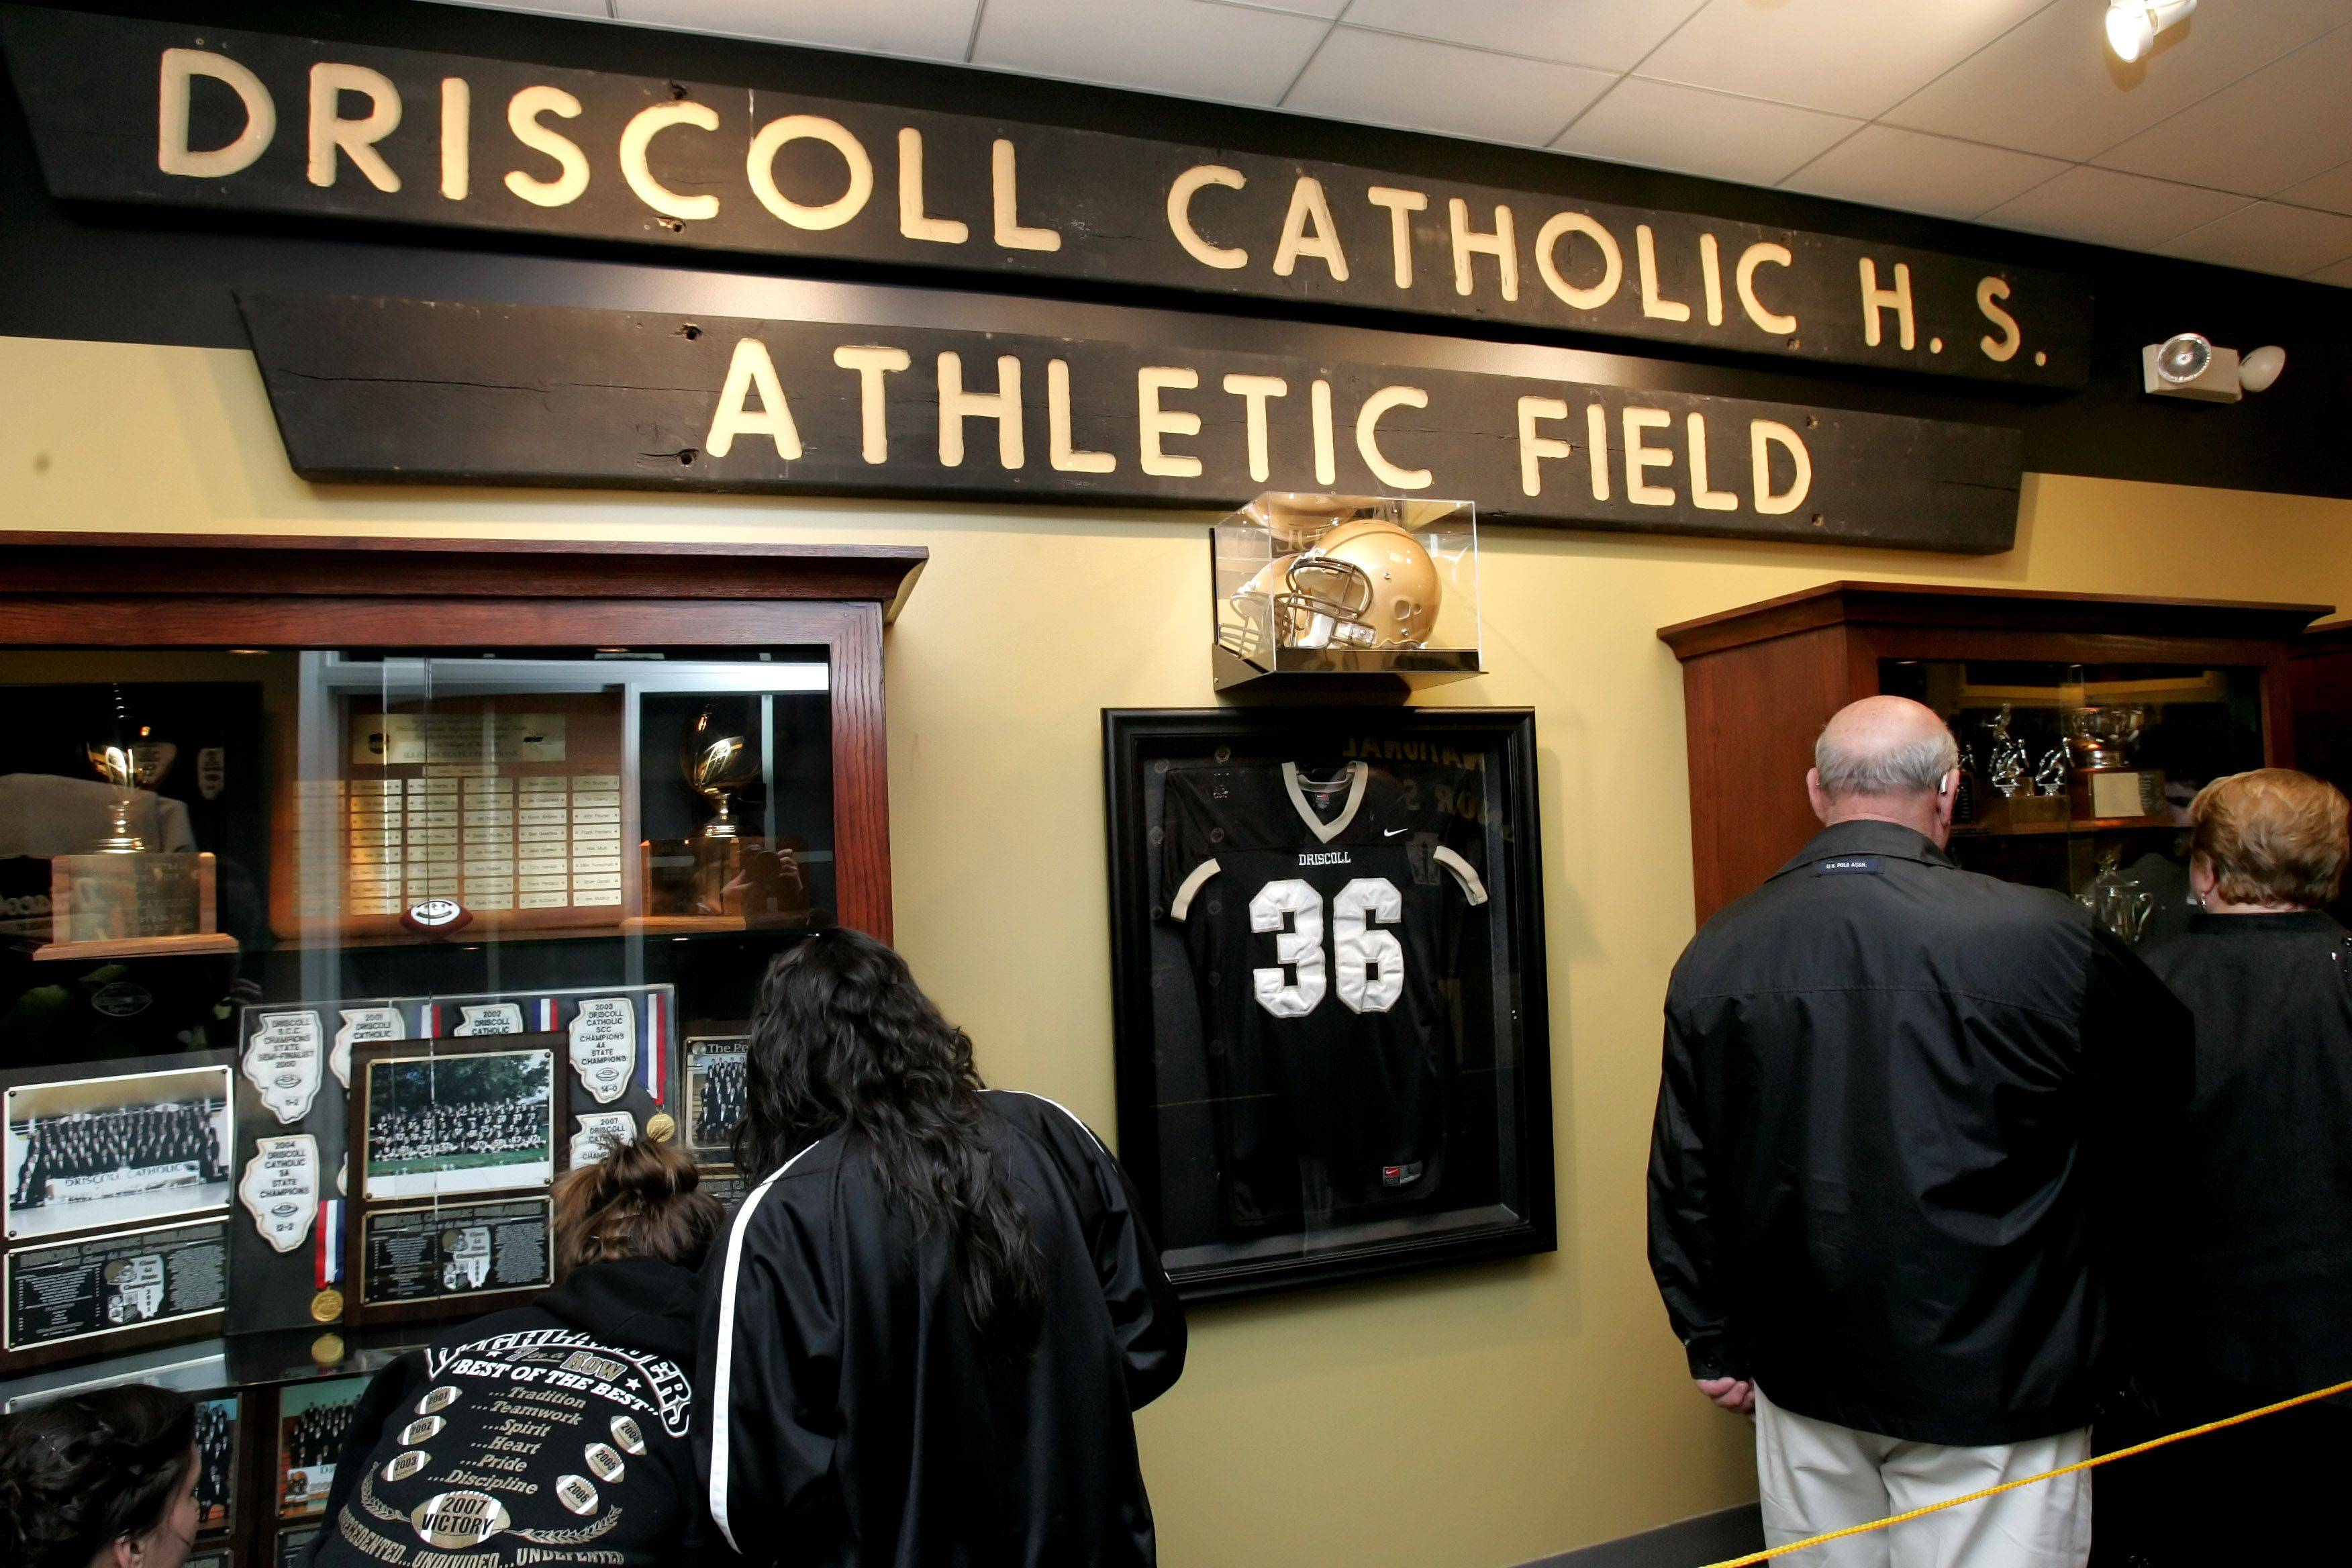 The Driscoll Legacy Corridor inside Addison village hall remains open to visitors as a permanent tribute to the 43-year-old Driscoll Catholic High School.